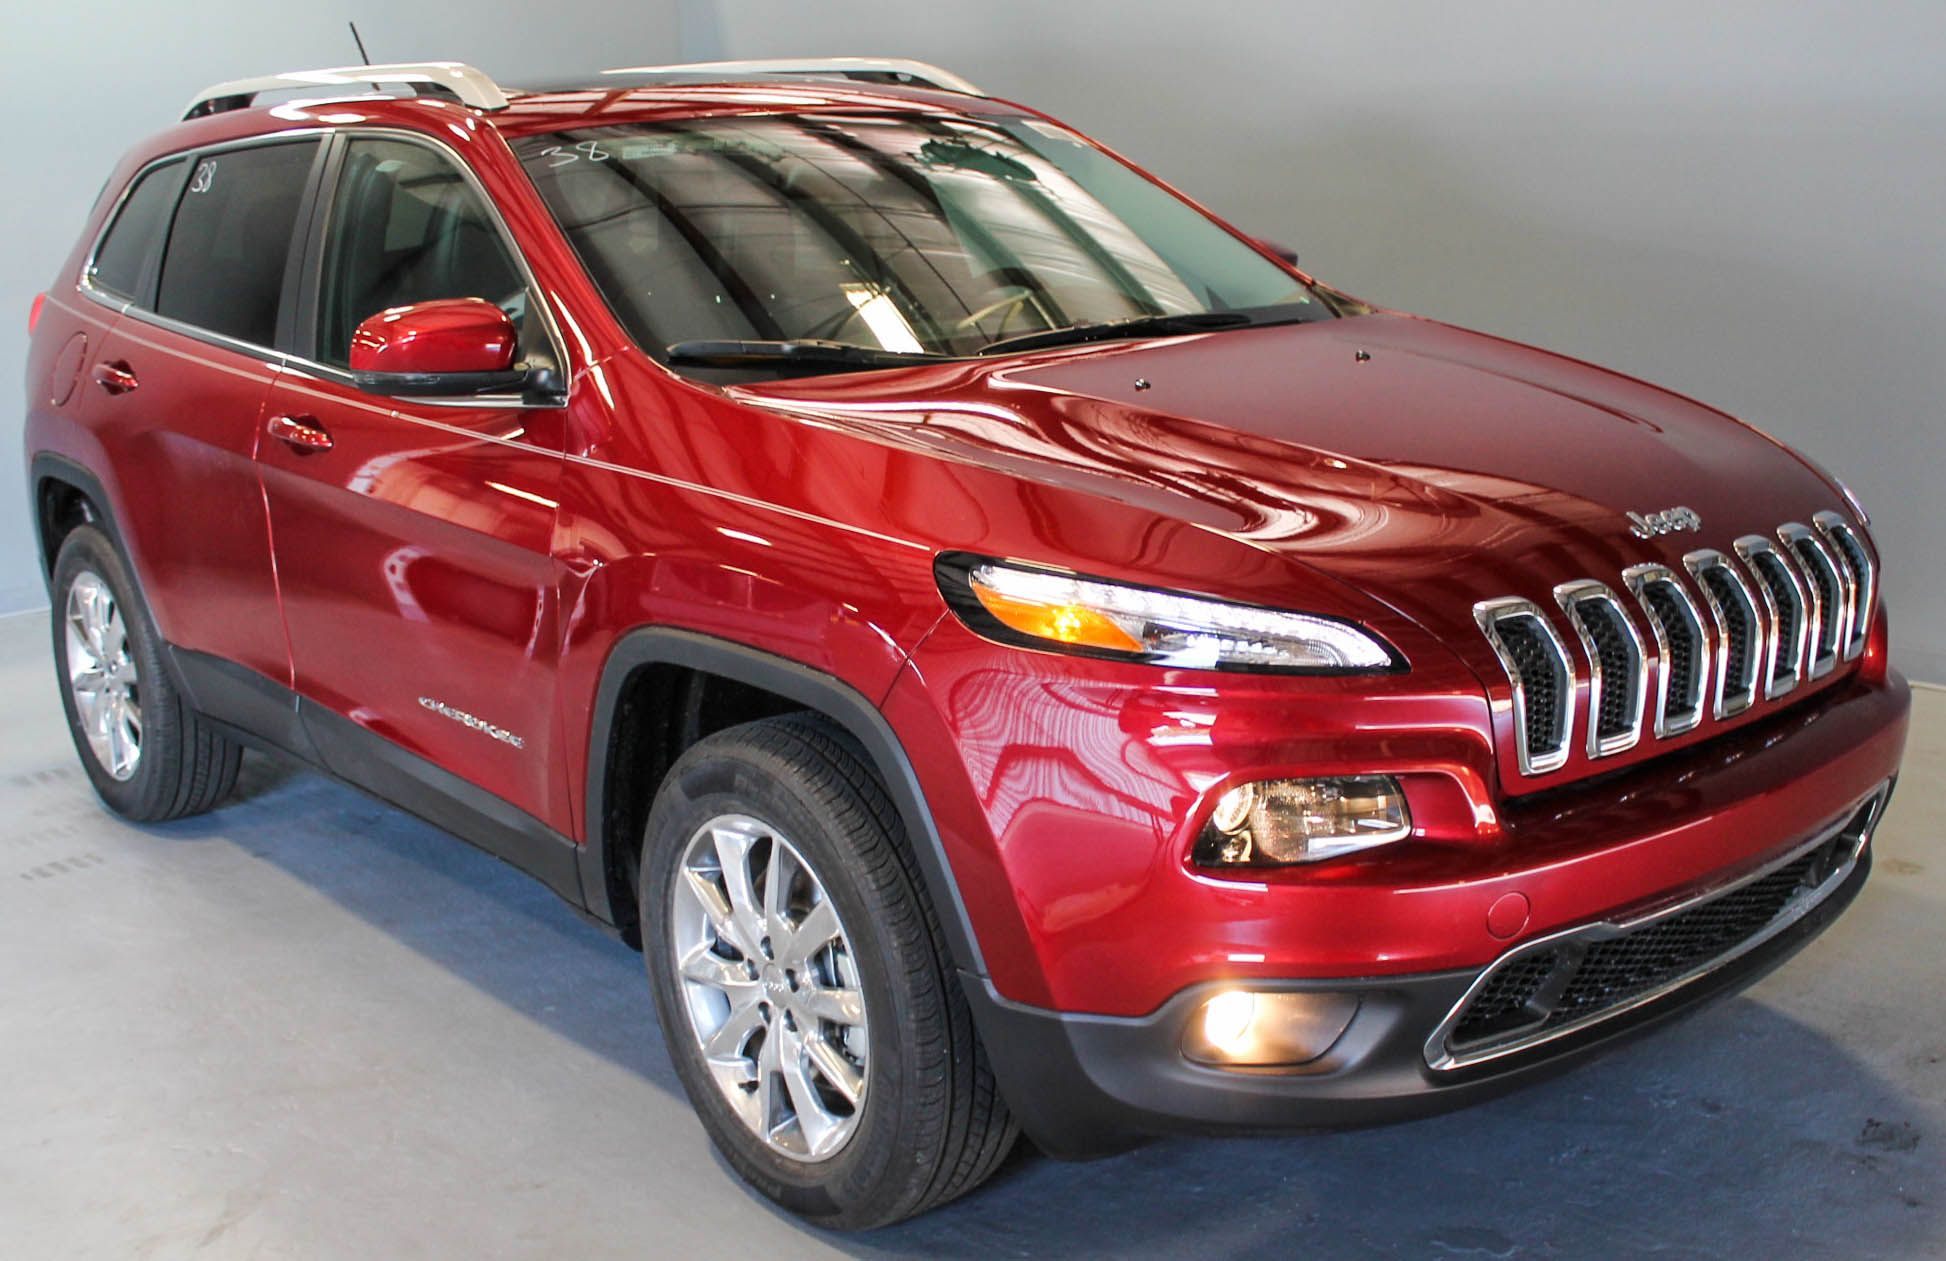 NEW 2014 Jeep Cherokee Limited Red